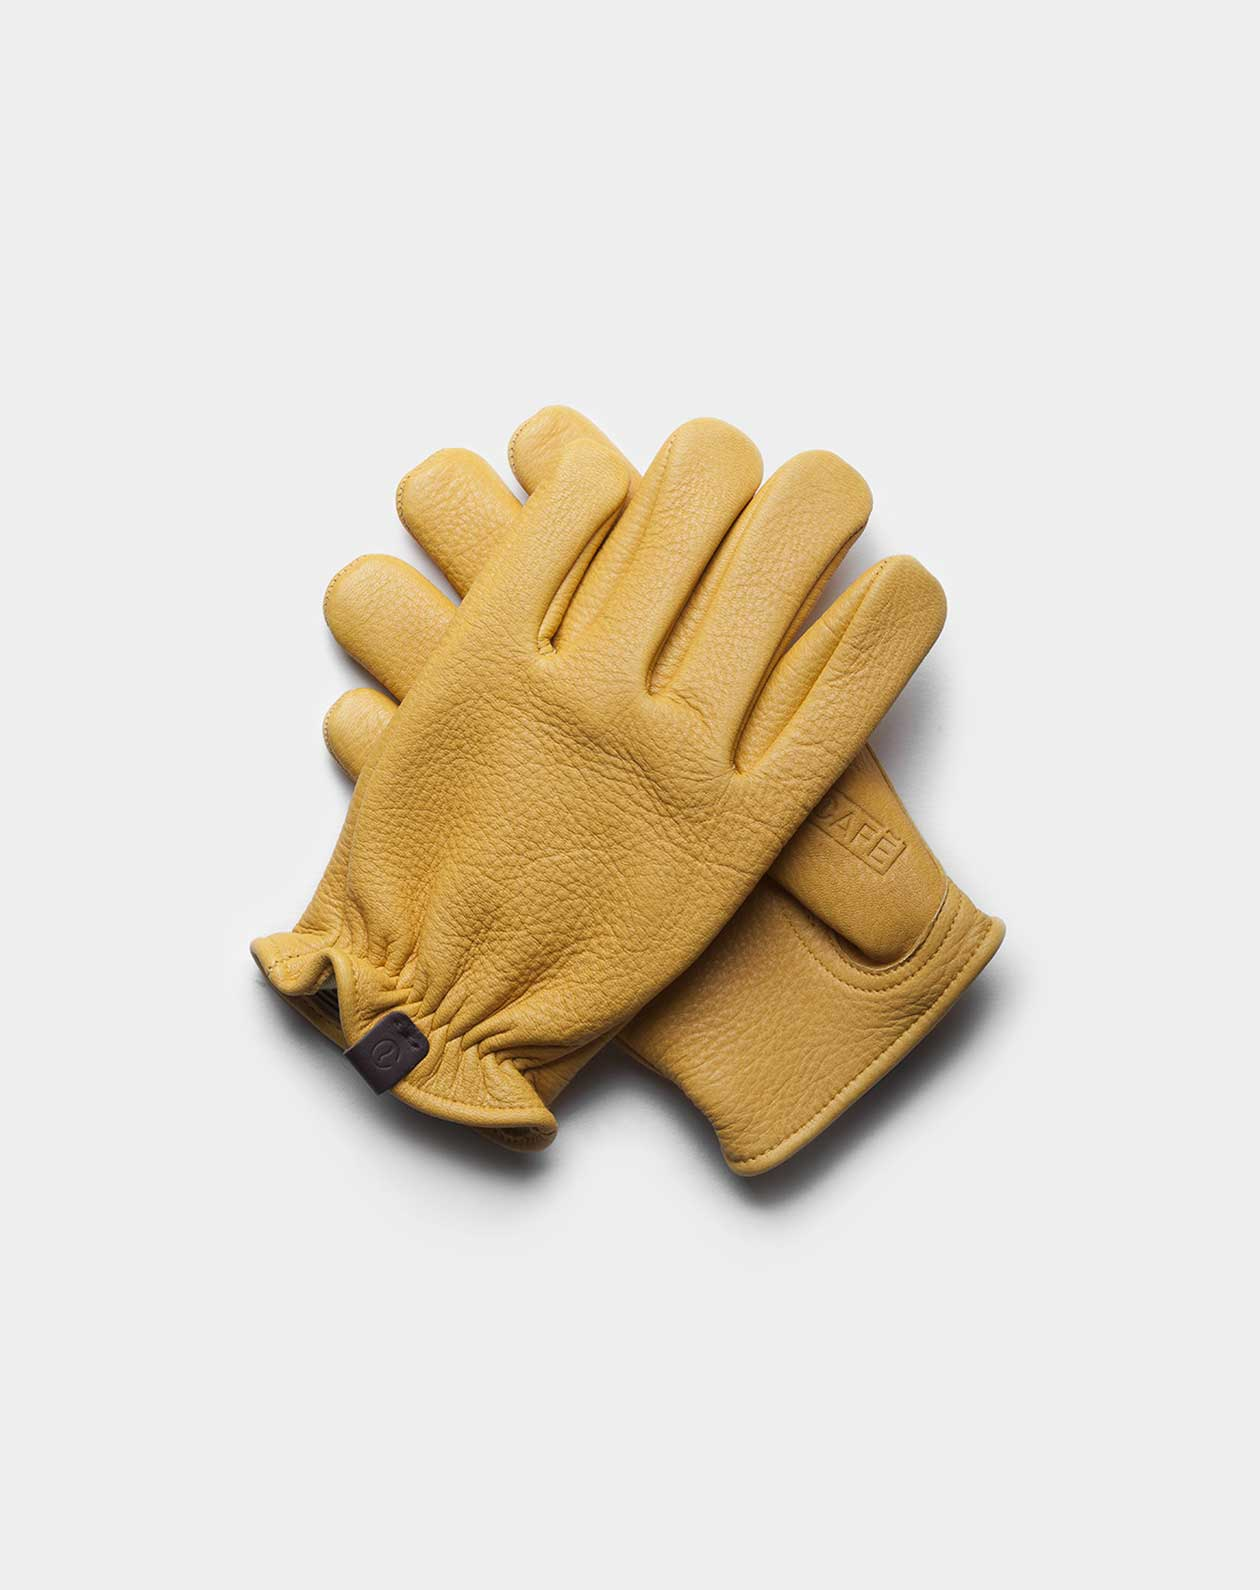 deerskin gloves yellow